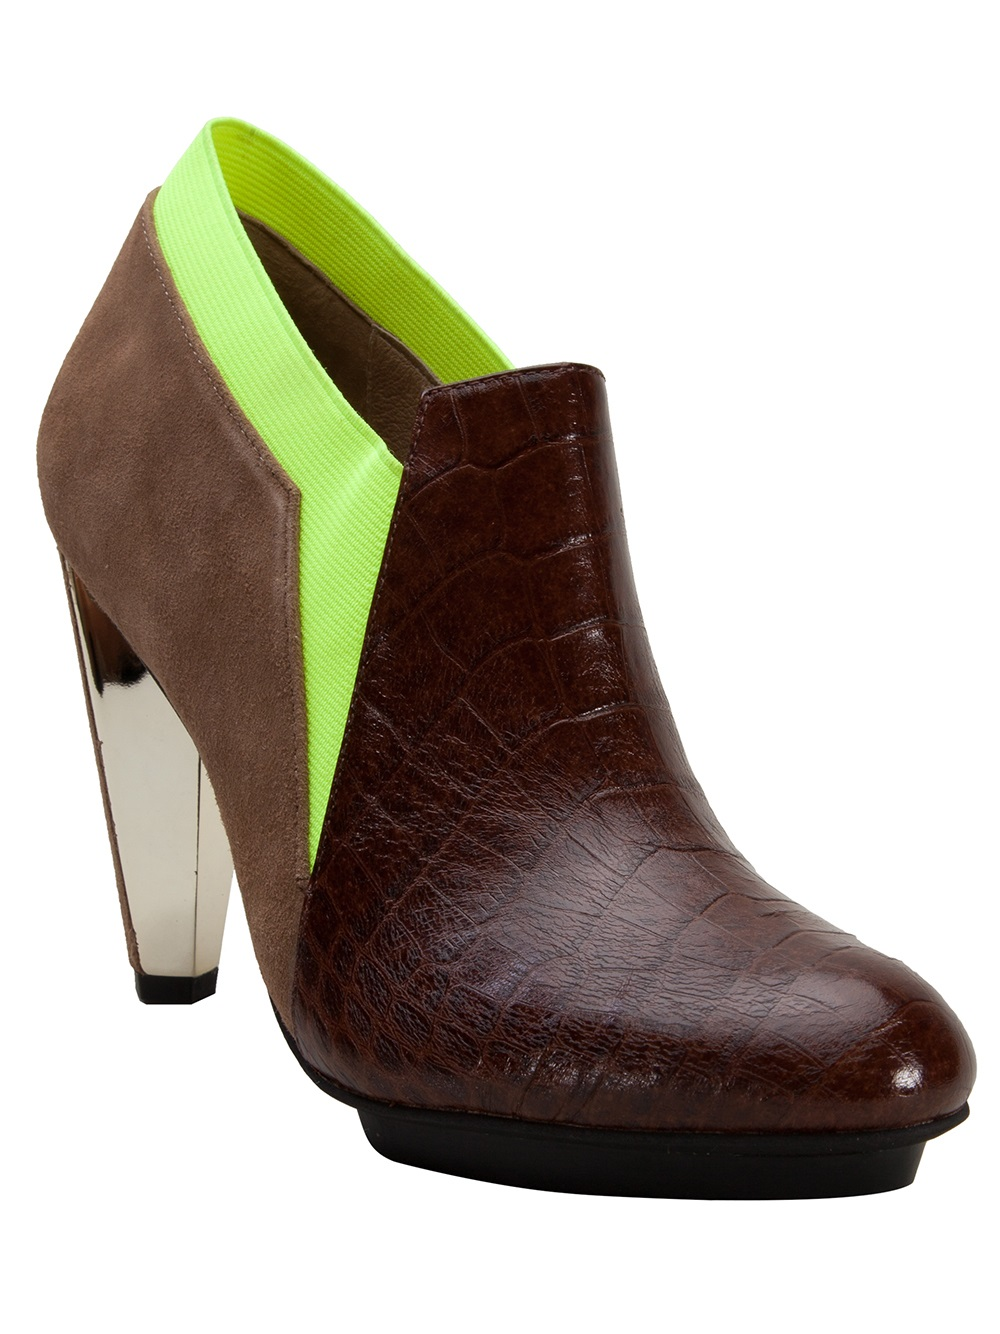 Lyst - United Nude Lola Bootie In Green-4865